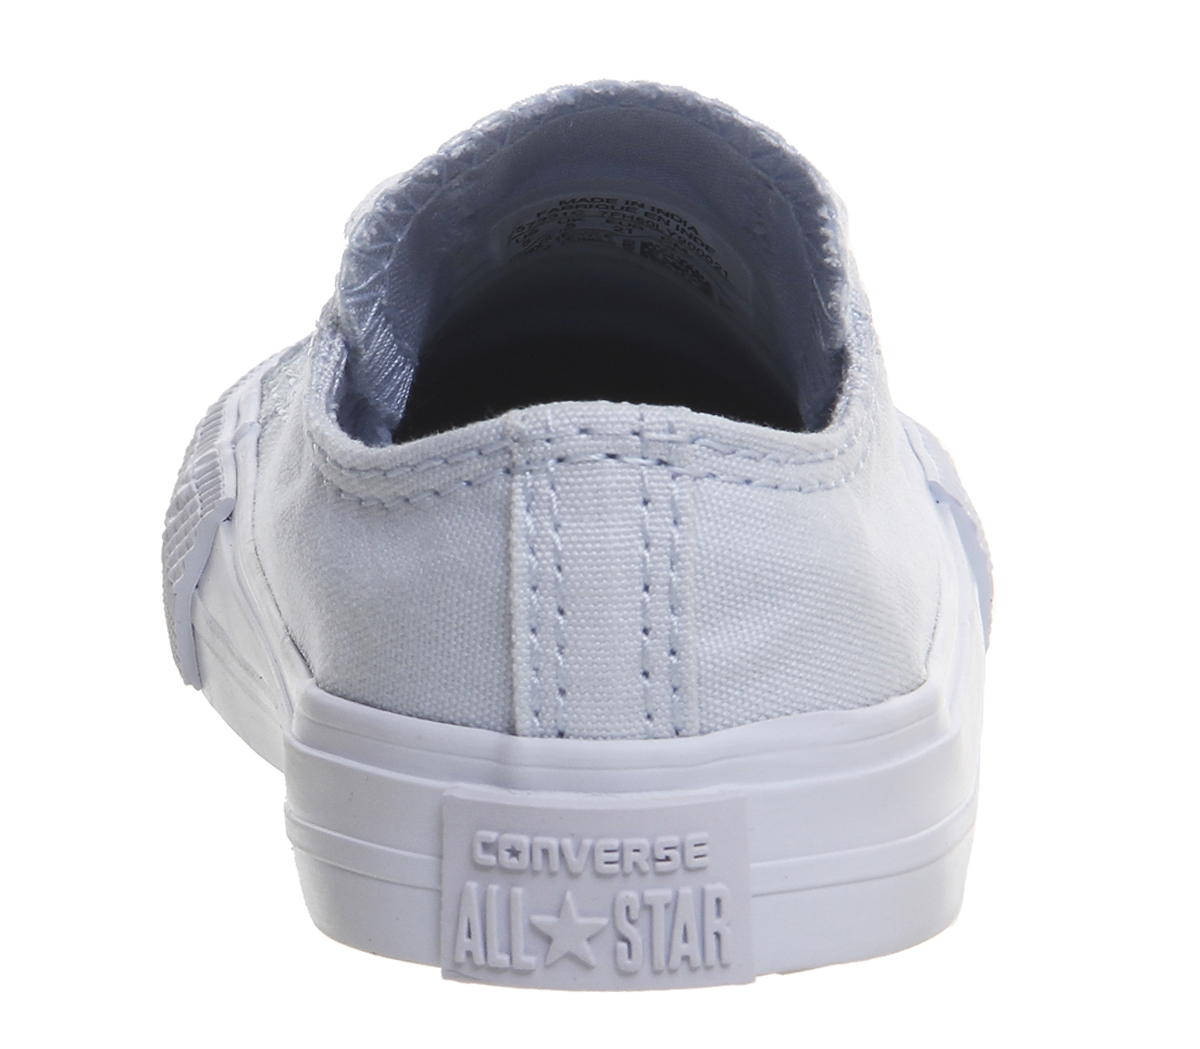 5cce22fd504b Sentinel Kids Converse All star Low Infant Trainers PORPOISE BLUE MONO Kids